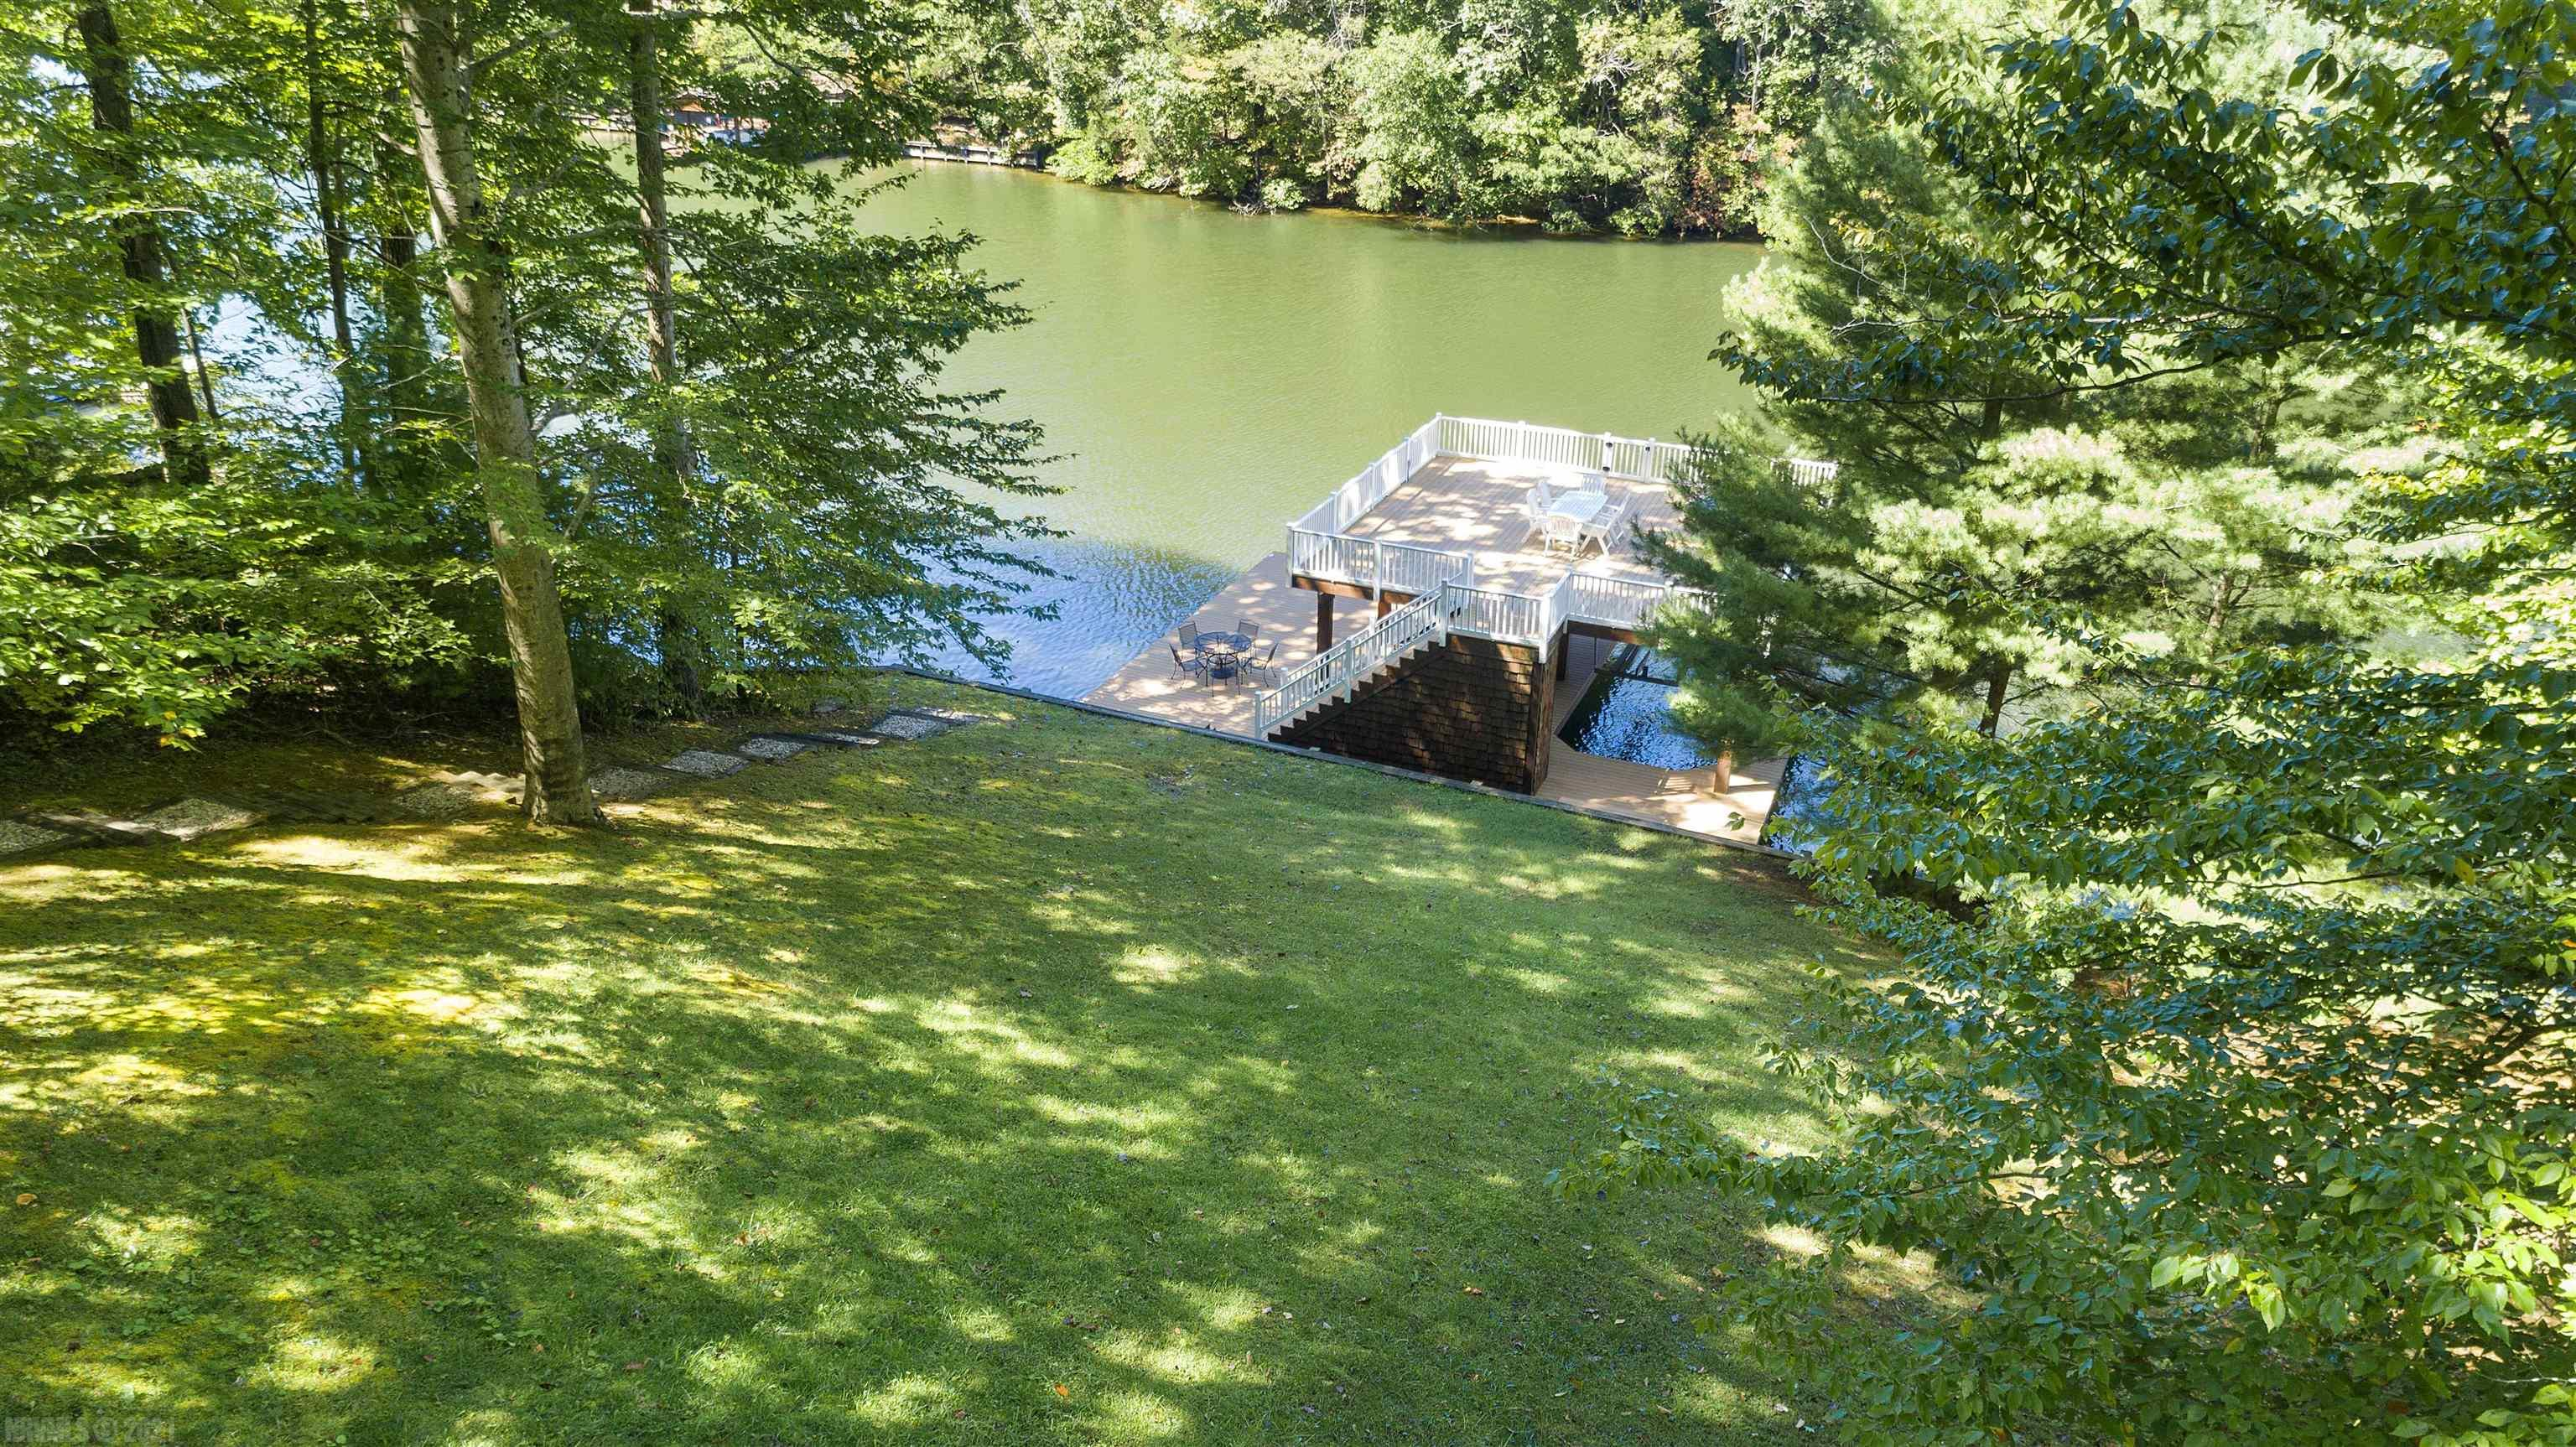 Build your dream home here. Double bay boat lift with all composite decking and railing. Great views from top deck of boat lift. Seawall in place. Easy access to main body of lake. Minutes off I 81, close to shopping & restaurants.